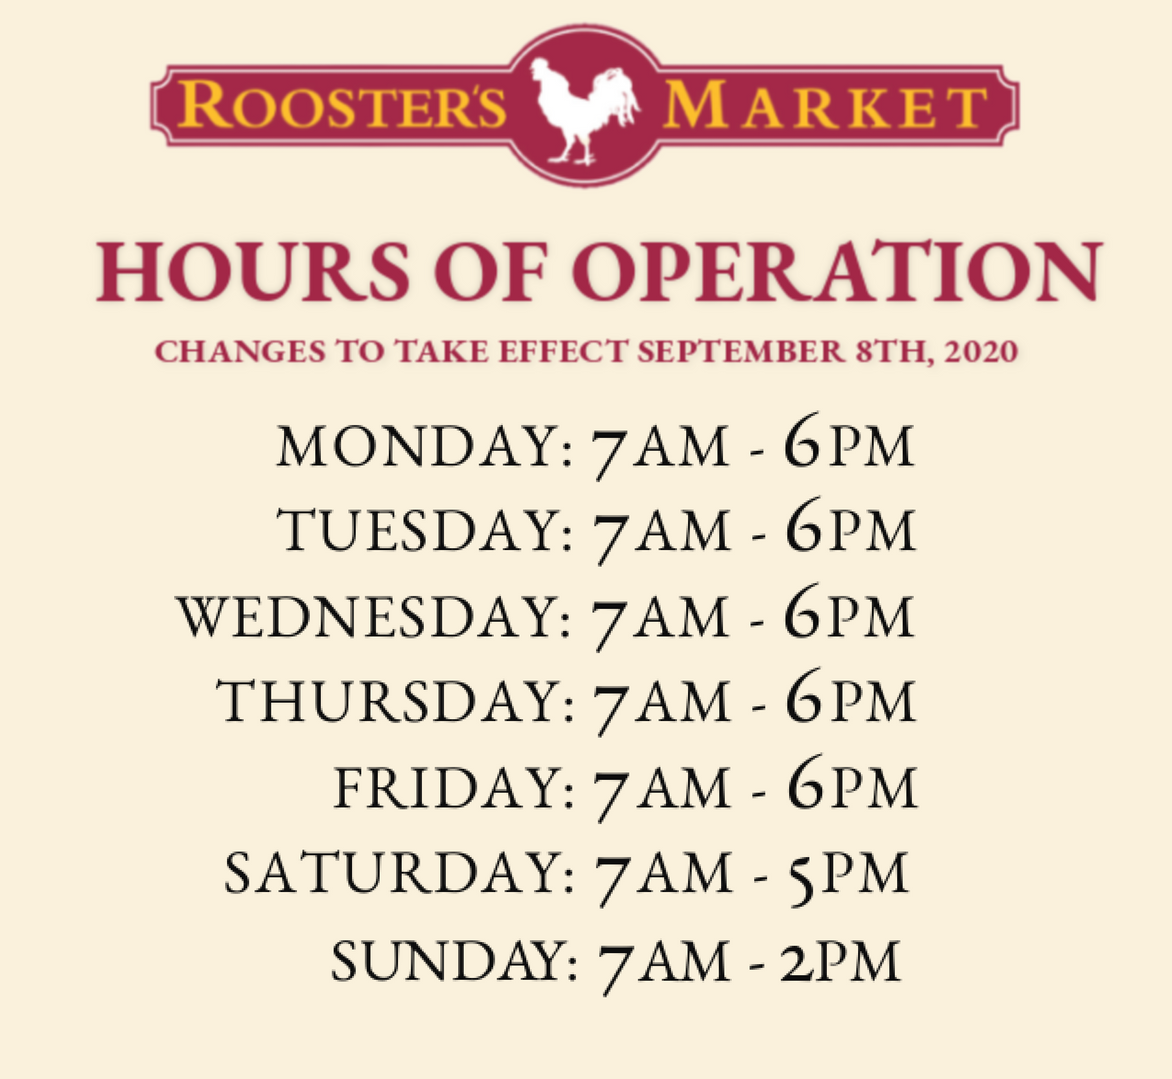 Revised Hours of Operation